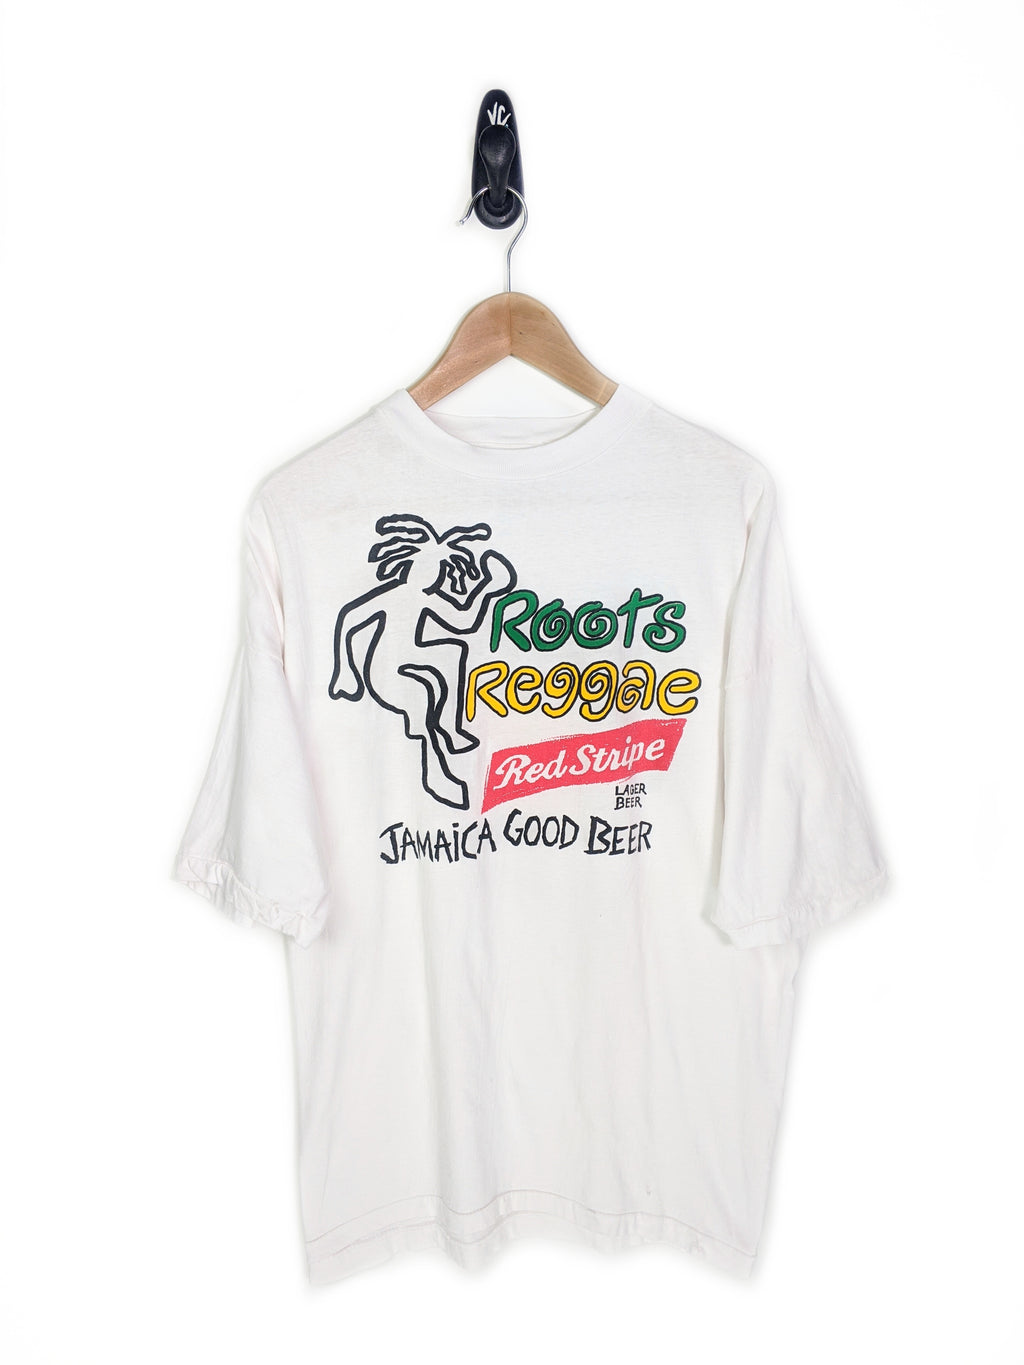 Roots Reggae Red Stripe Beer Tee (XL)